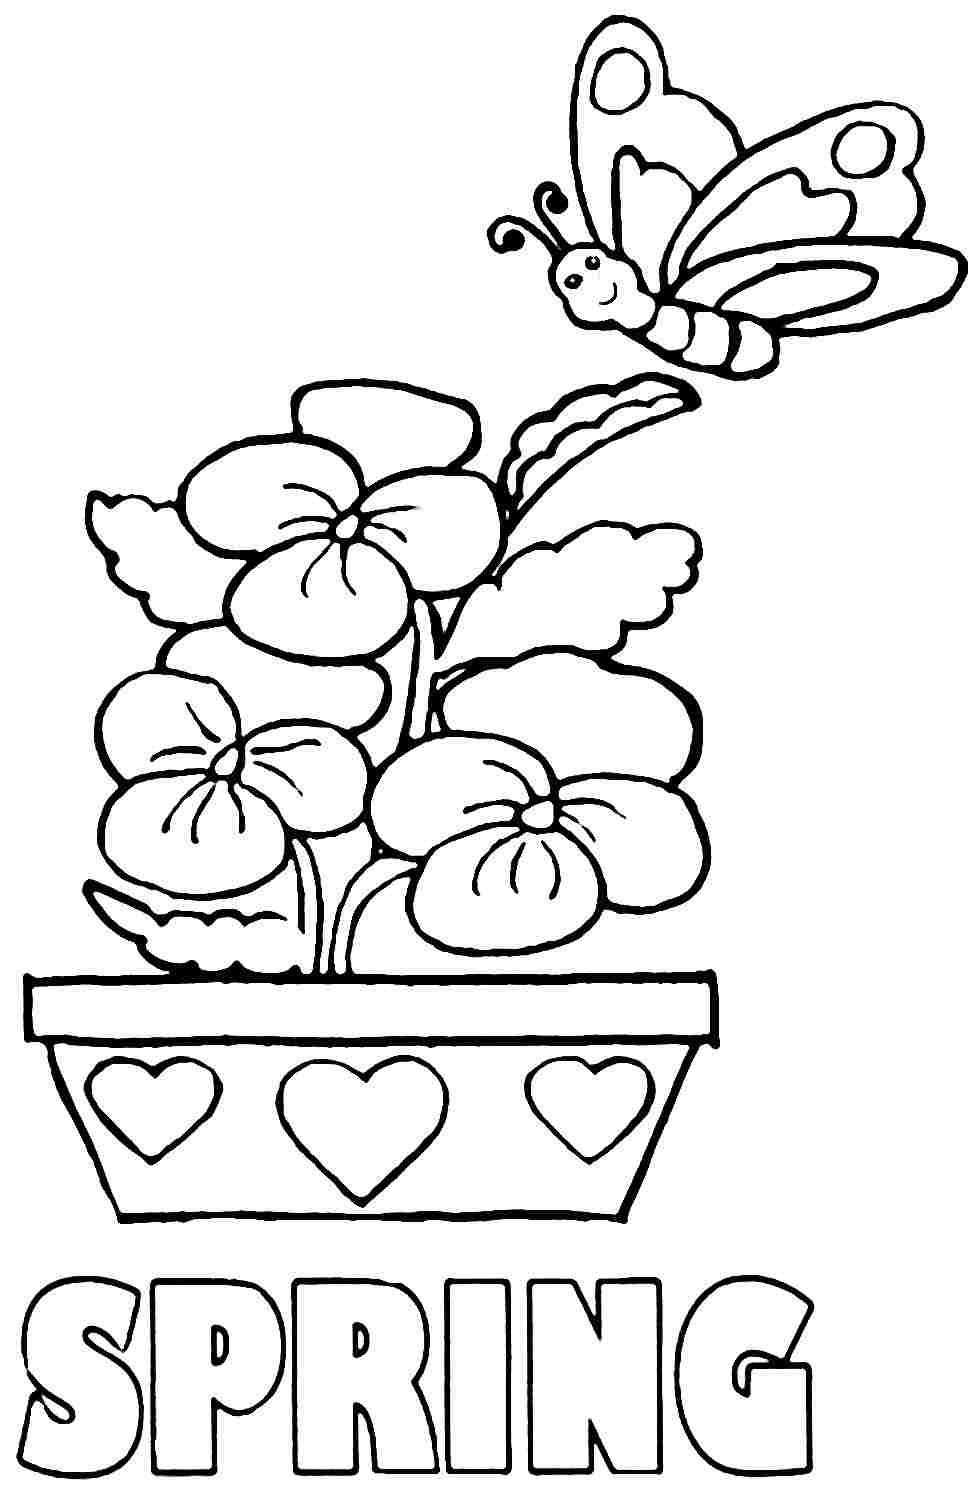 Free Coloring Sheets For Kids For Spring  Easy Spring Coloring Pages For Kids Coloring